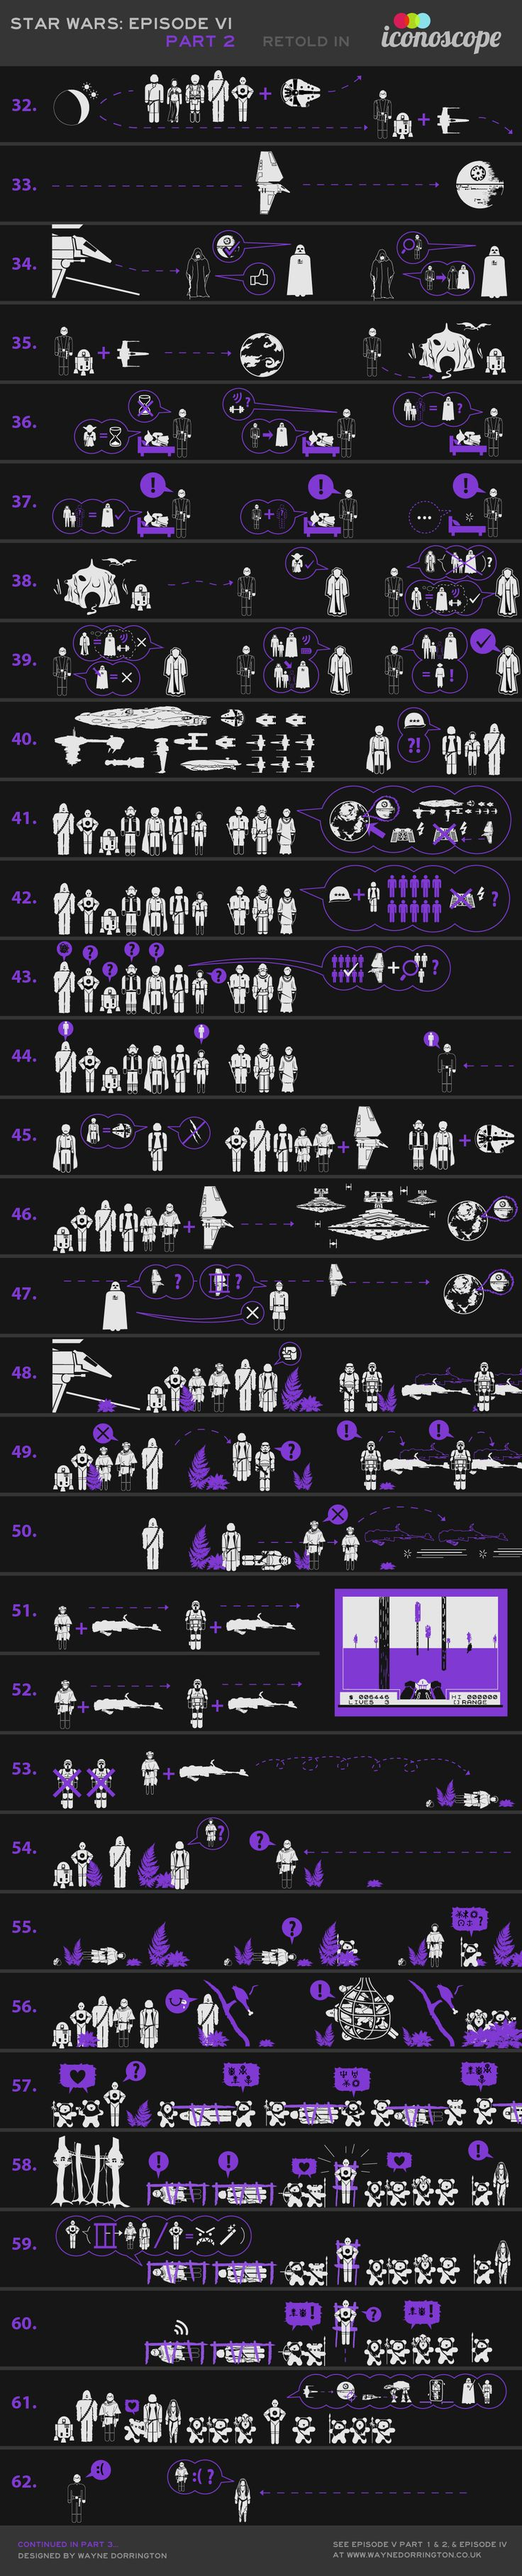 #starwars episode VI (part 2) retold in iconoscope #fanart